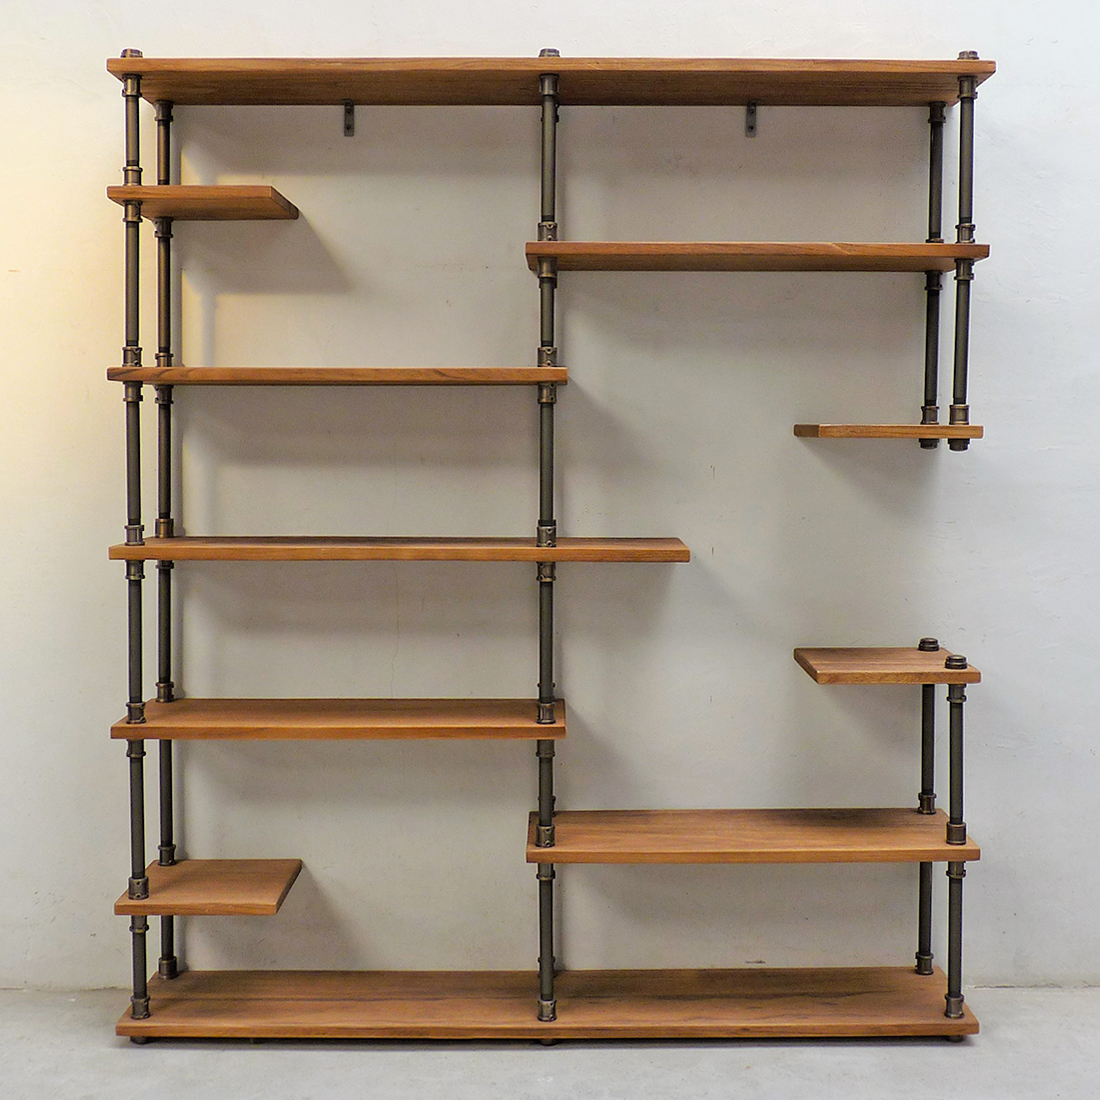 Nashville Industrial Mid Century 64 Inch Wide Large Open Etagere 11 Shelf Pipe Bookcase Metal With Reclaimed Wood Finish